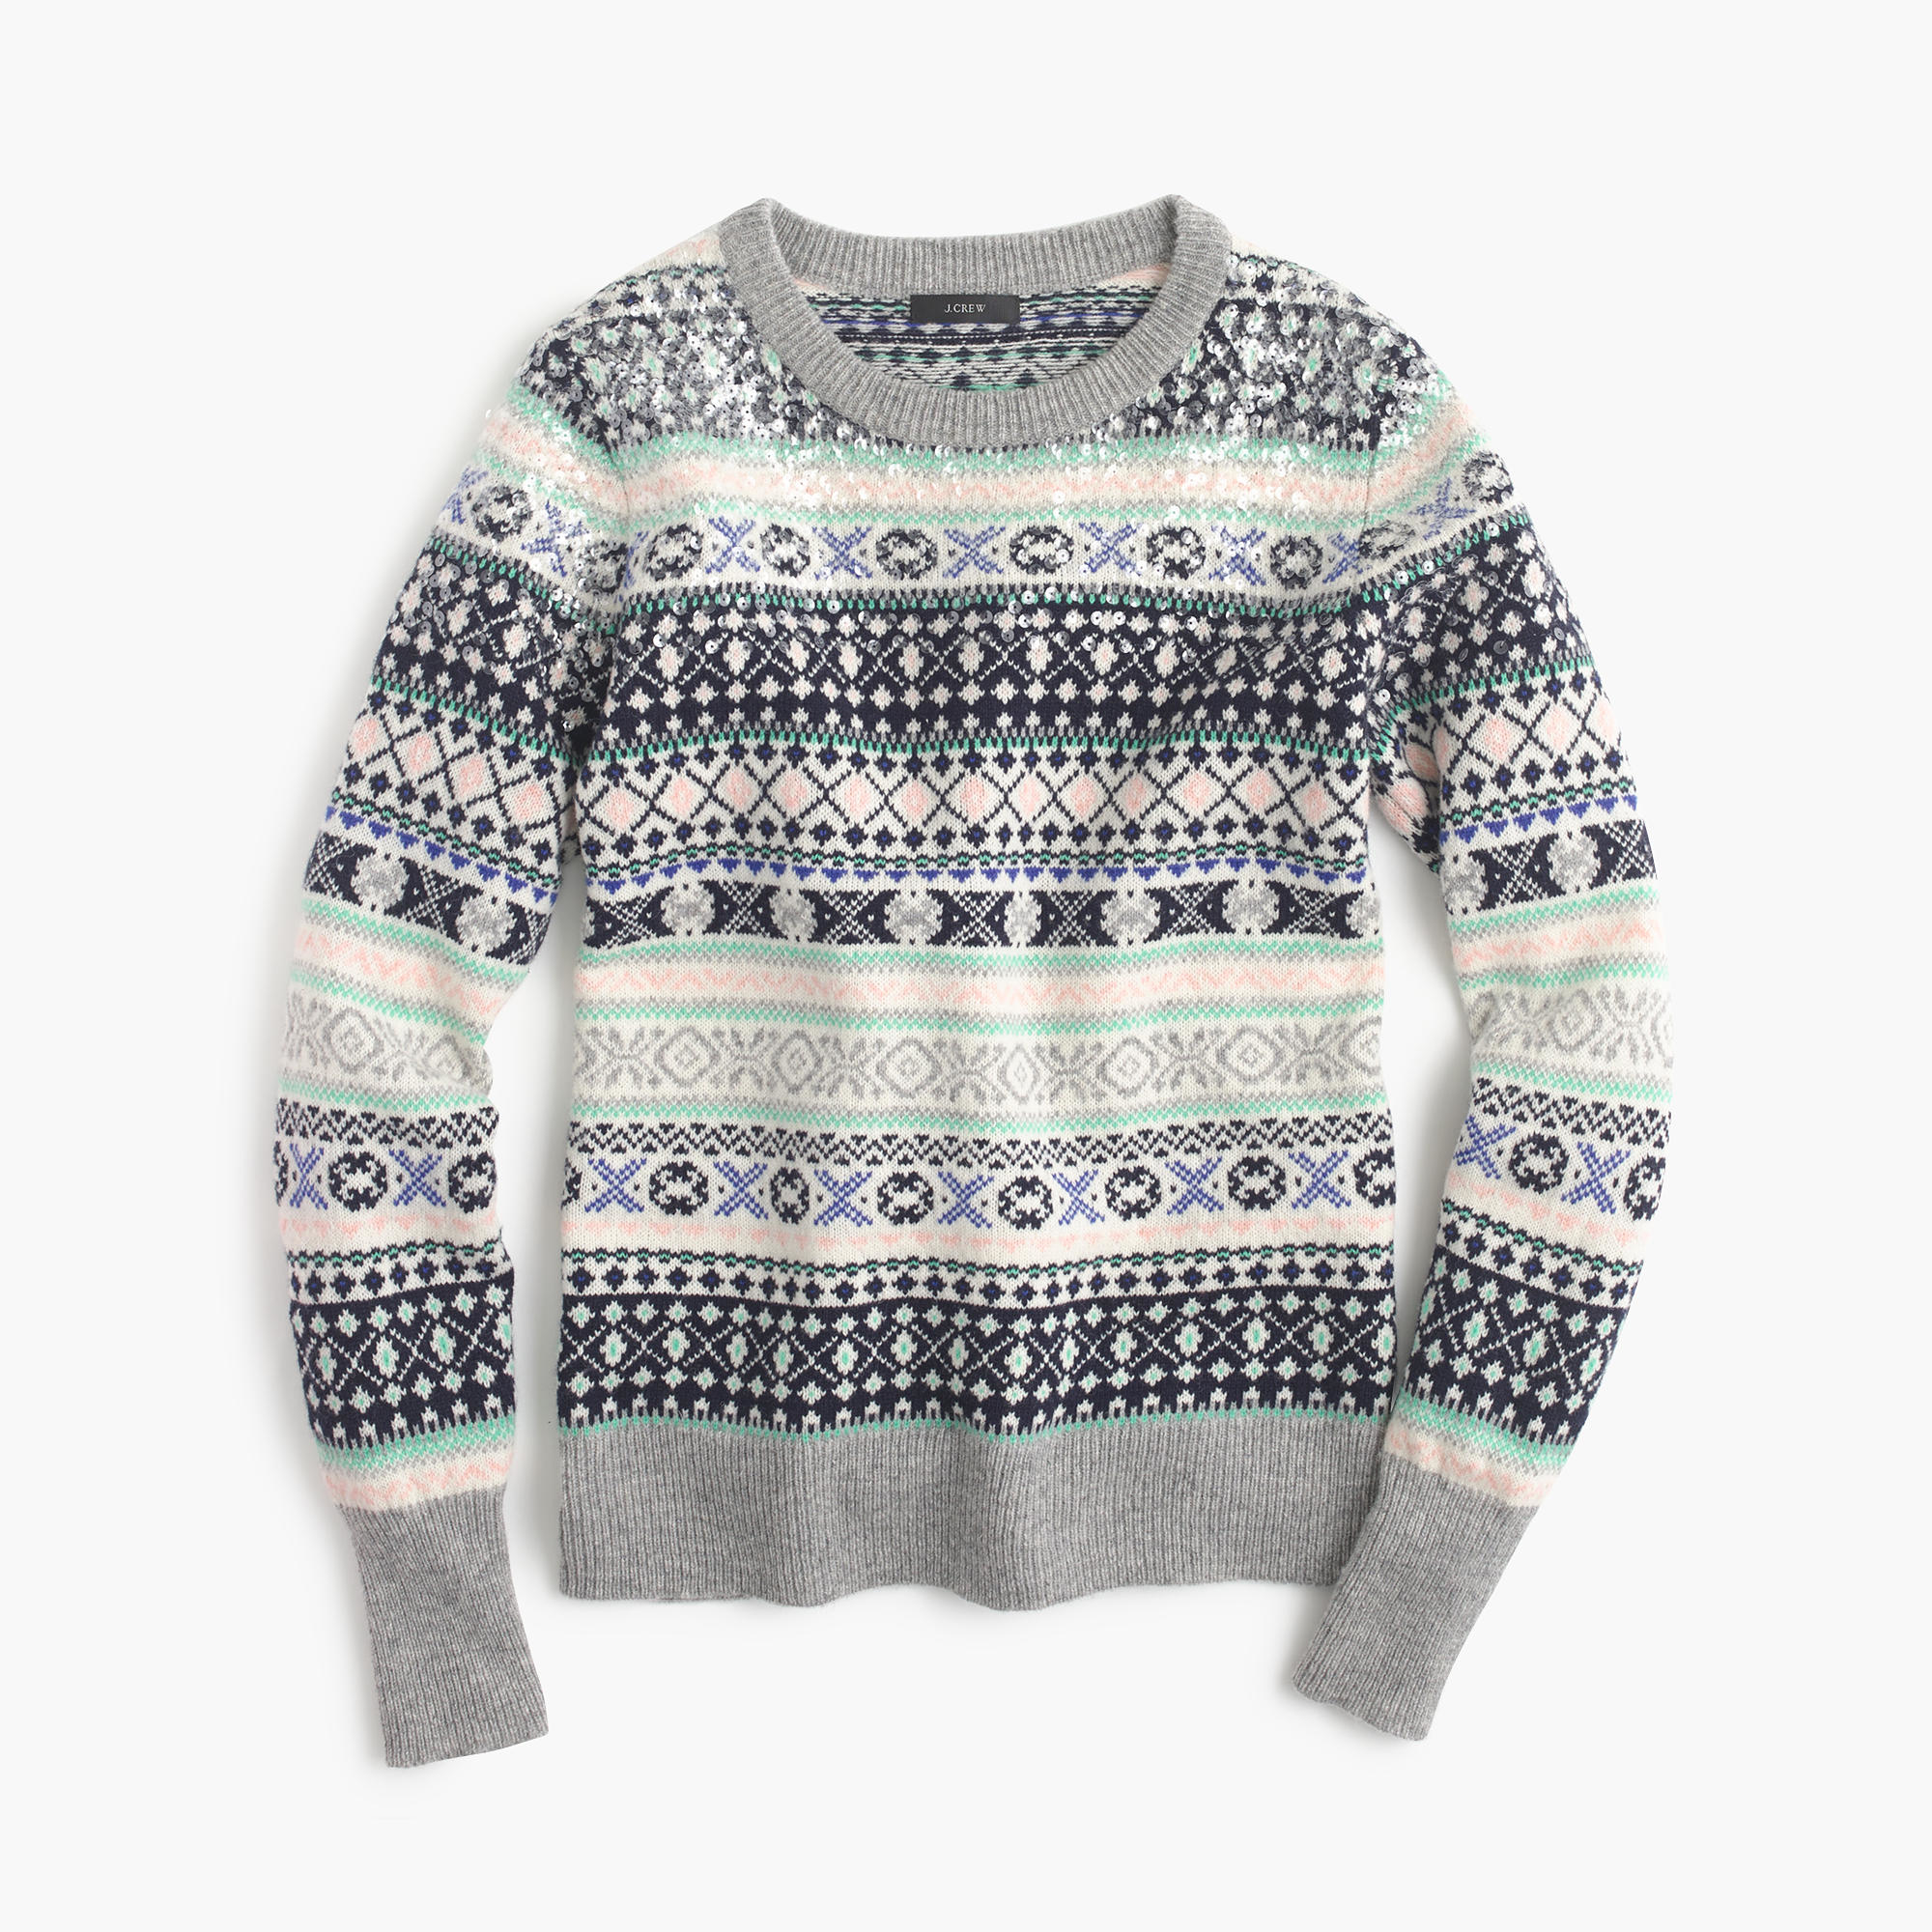 J.crew Sequin Fair Isle Sweater in Gray | Lyst